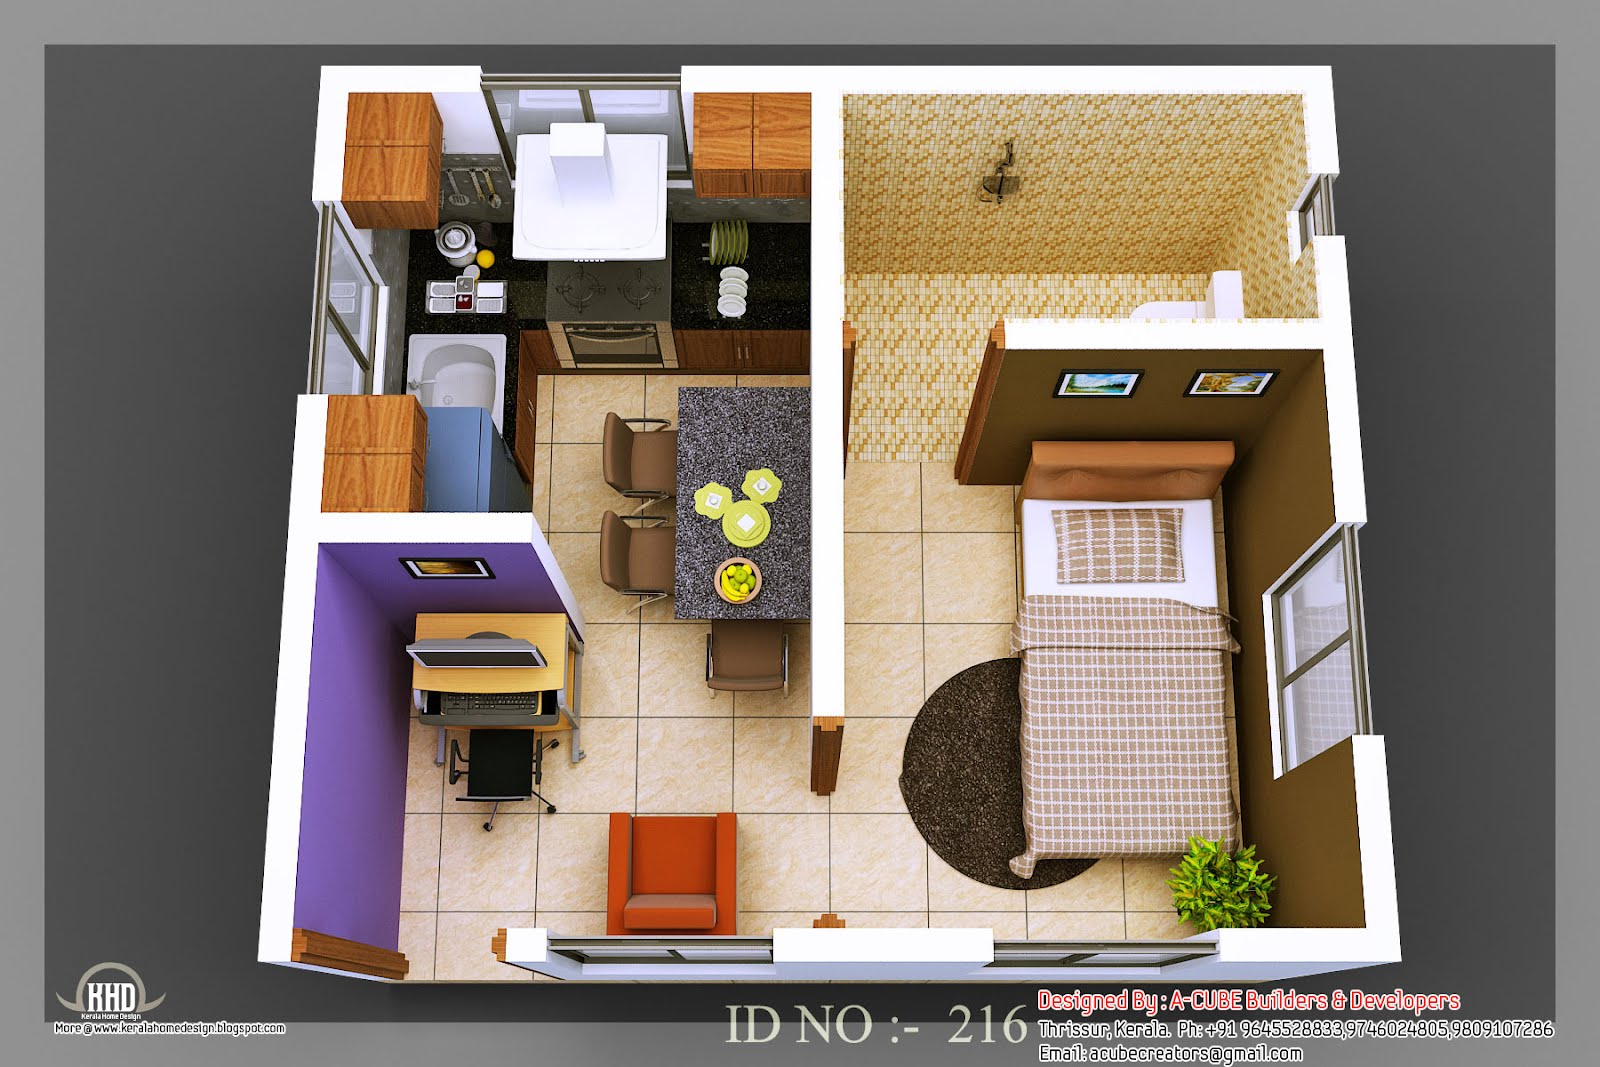 3d isometric views of small house plans kerala home design and floor plans for Idee per arredare casa piccola